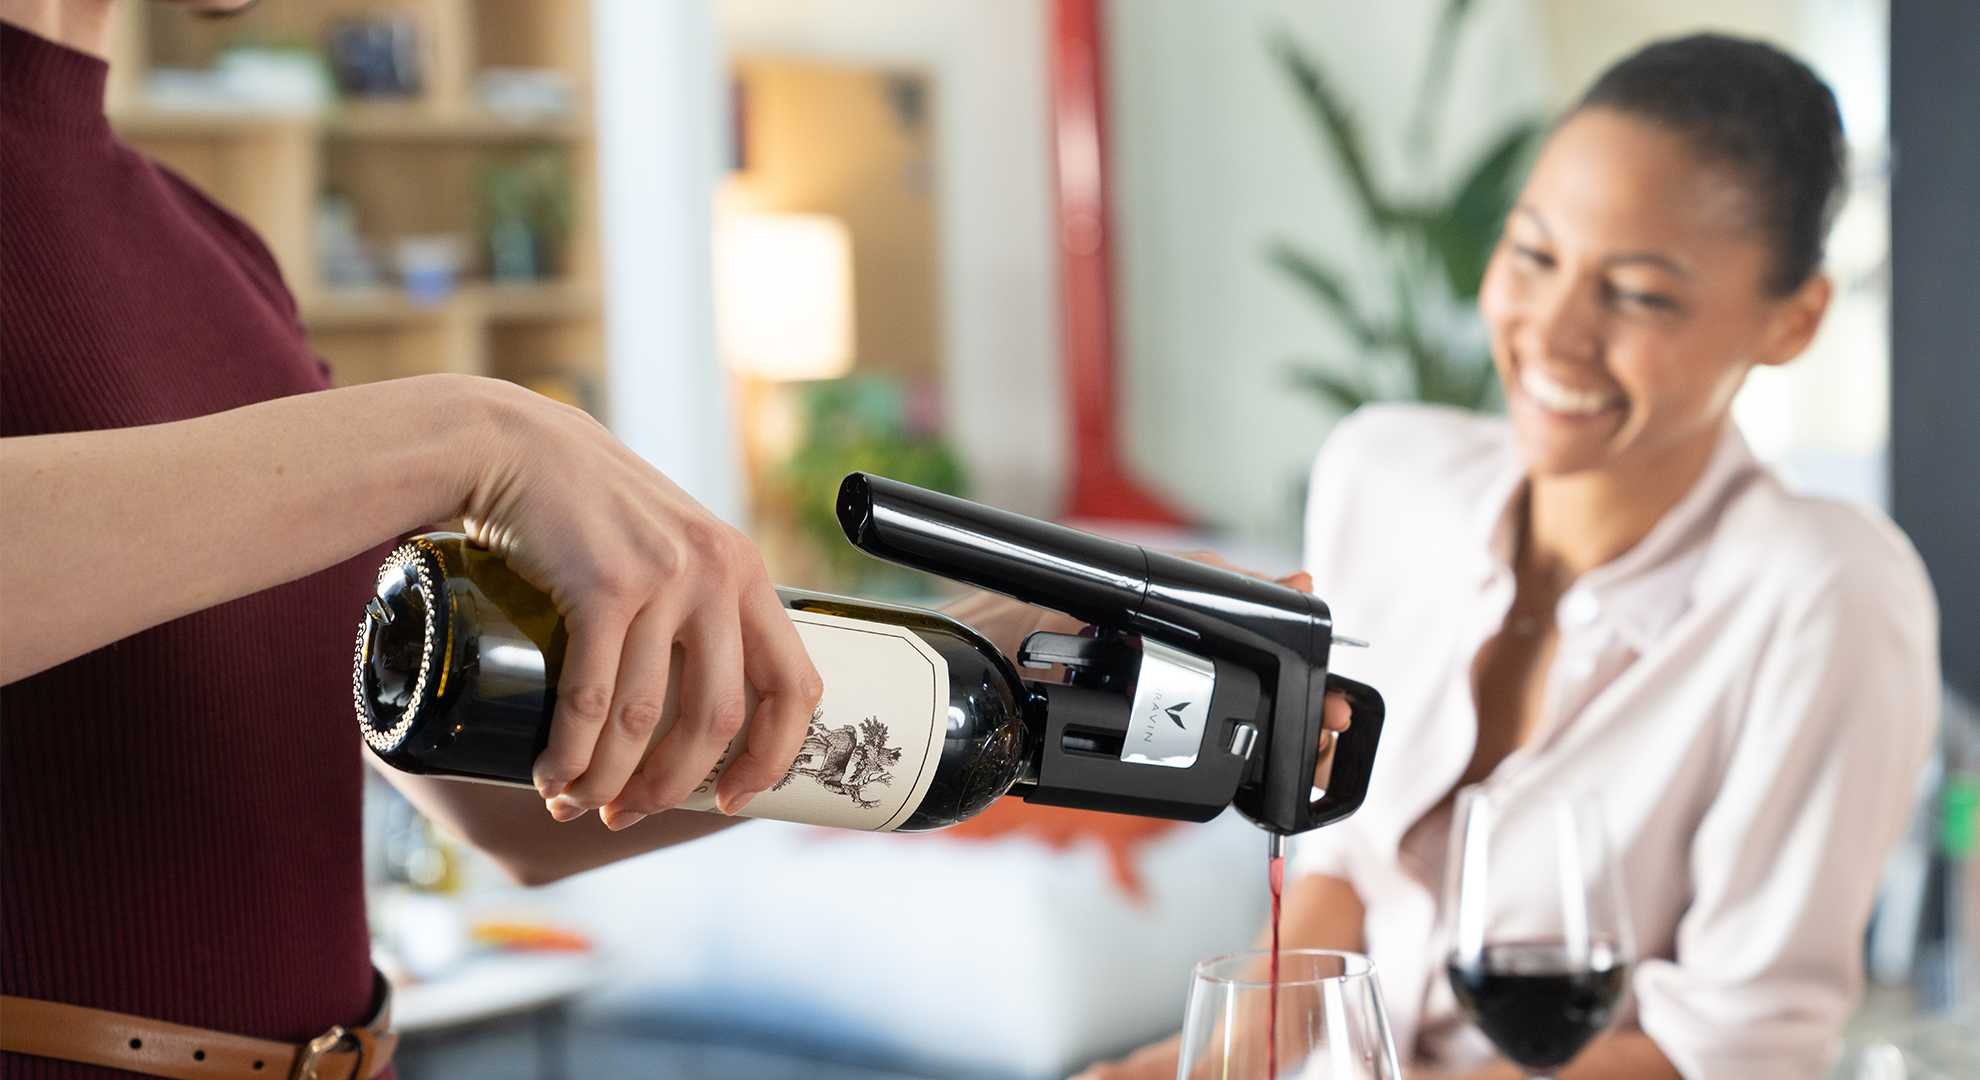 Young, professional woman smiling as a glass of red wine is poured using a Coravin Wine Preservation System.